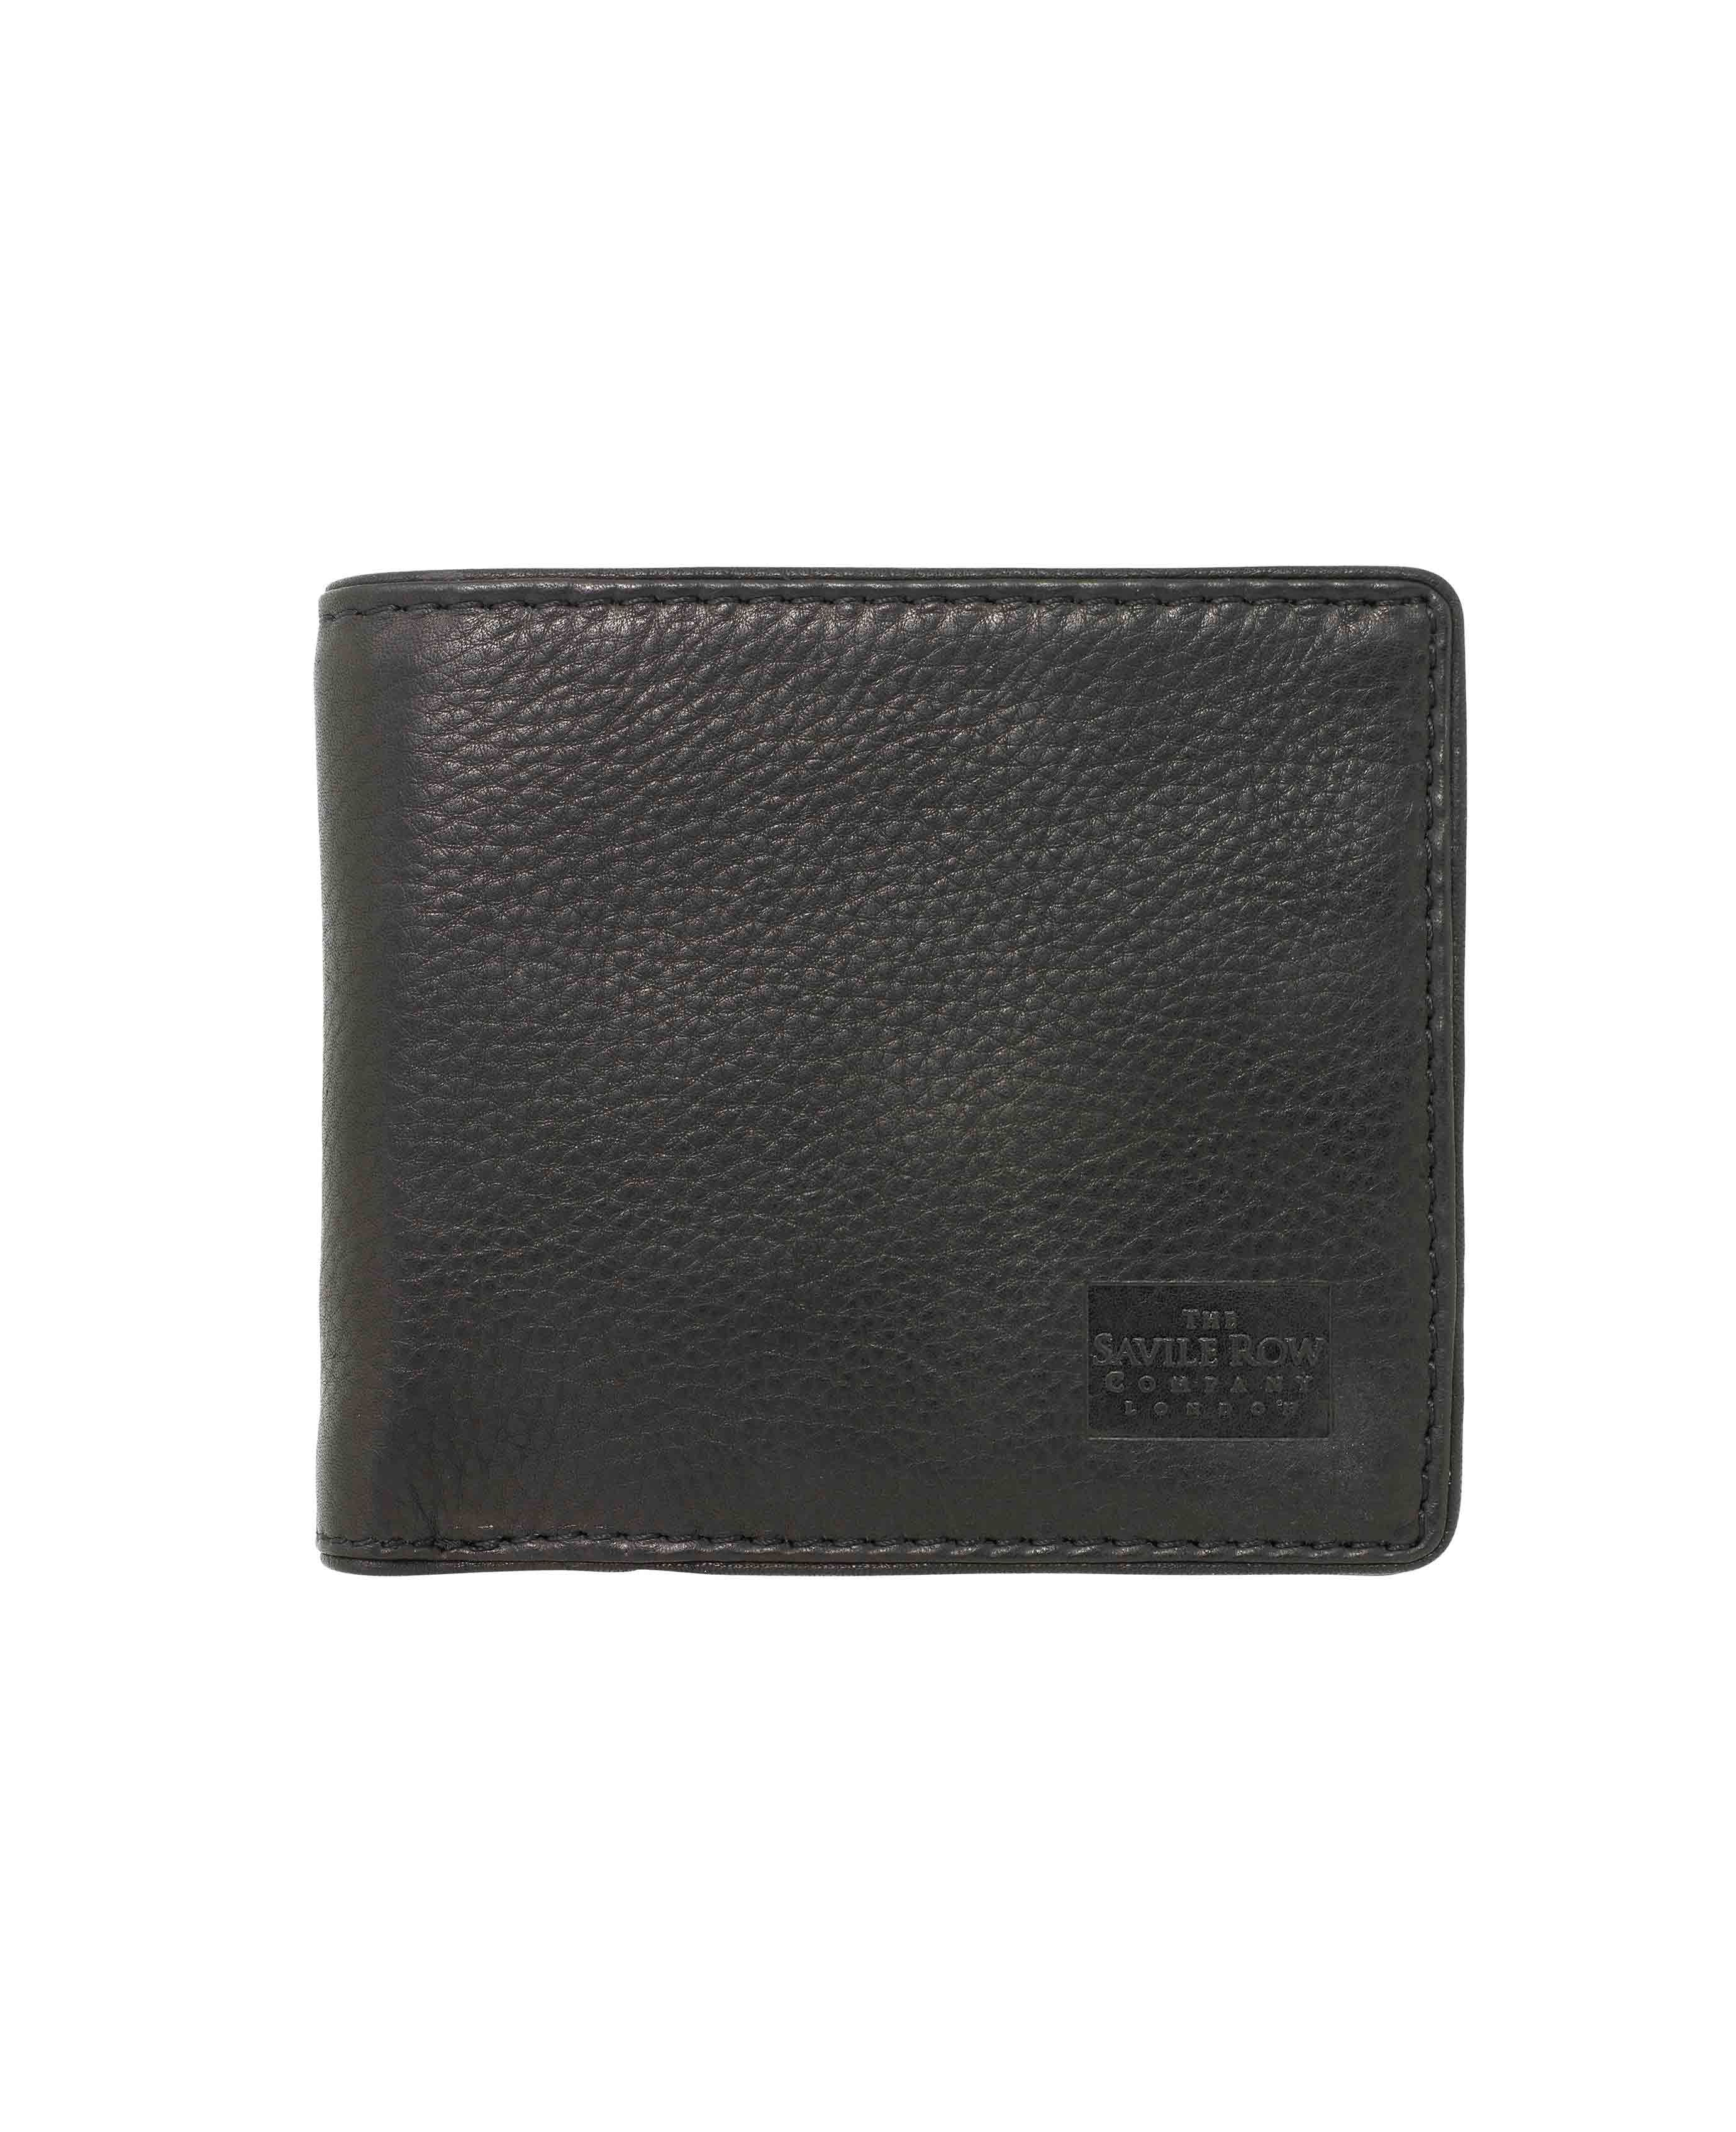 RAF roundel black leather bifold press stud wallet with coin pocket new in box